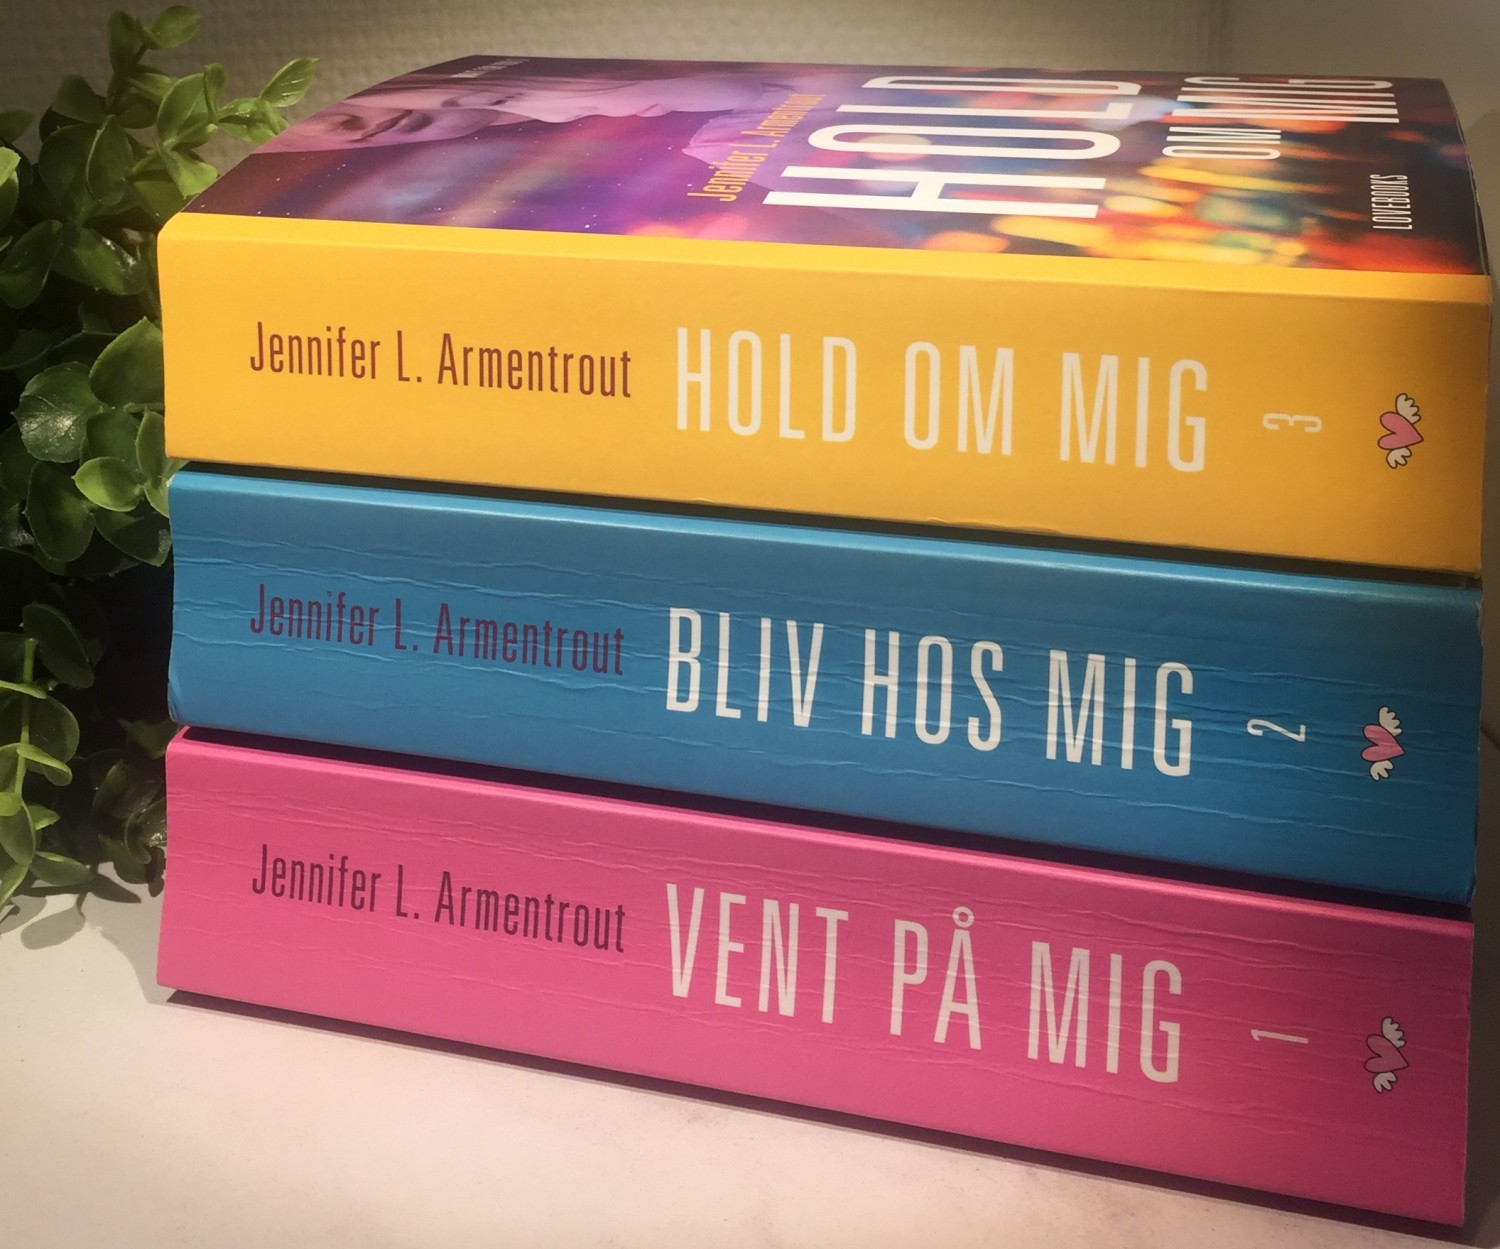 Jennifer L. Armentrout, Love Books, Krummes krummelurer, Anmeldelse, Boganmeldelse, Hold om mig, Wait for you, Wait for you 3, Vent på mig 3, New adult, Anmeldereksemplar, Vent på mig, Hold om mig,